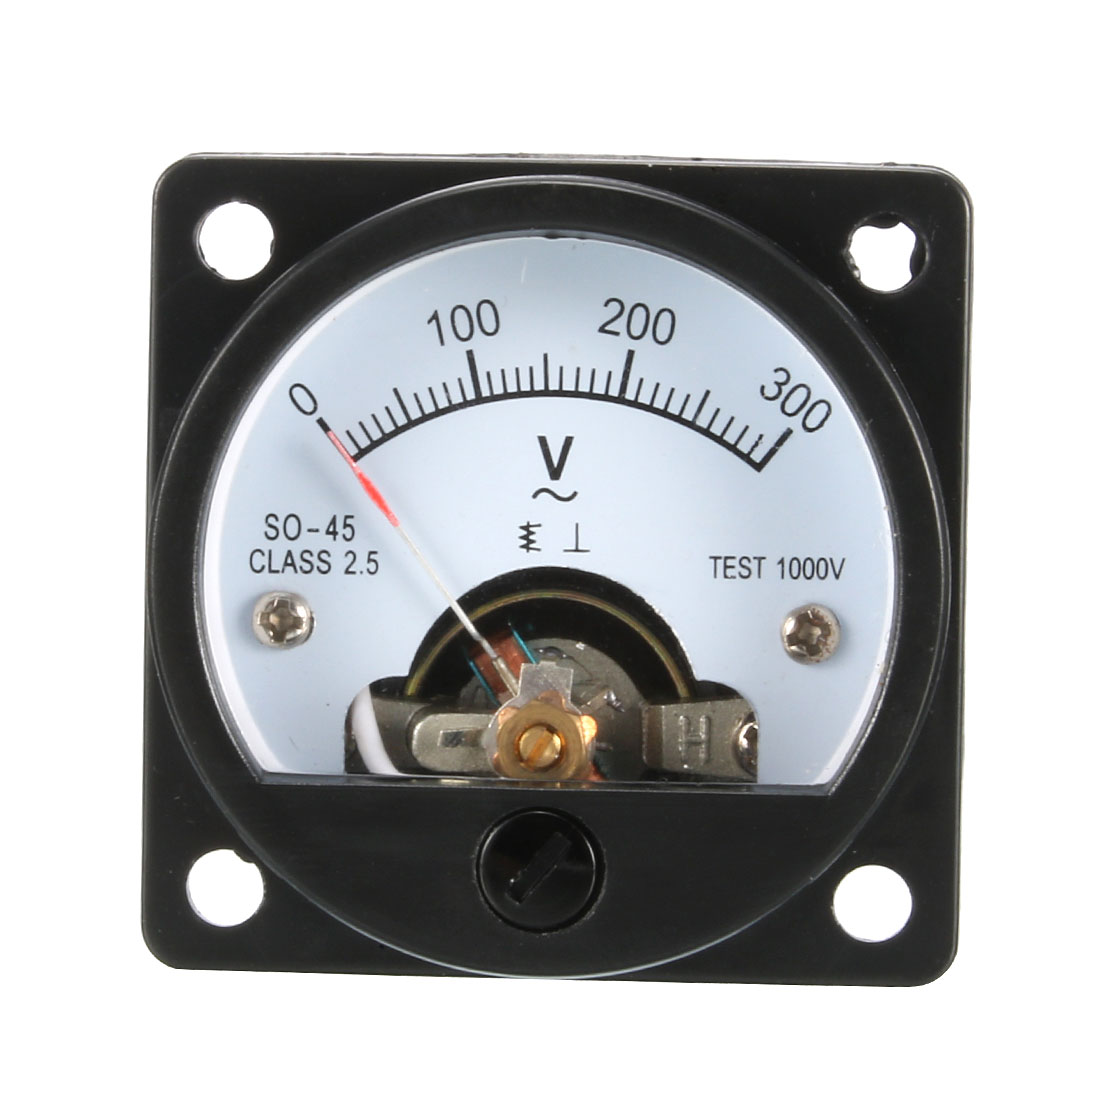 Plastic AC 0-300V Range Analog Voltmeter Voltage Gauge Panel Meter